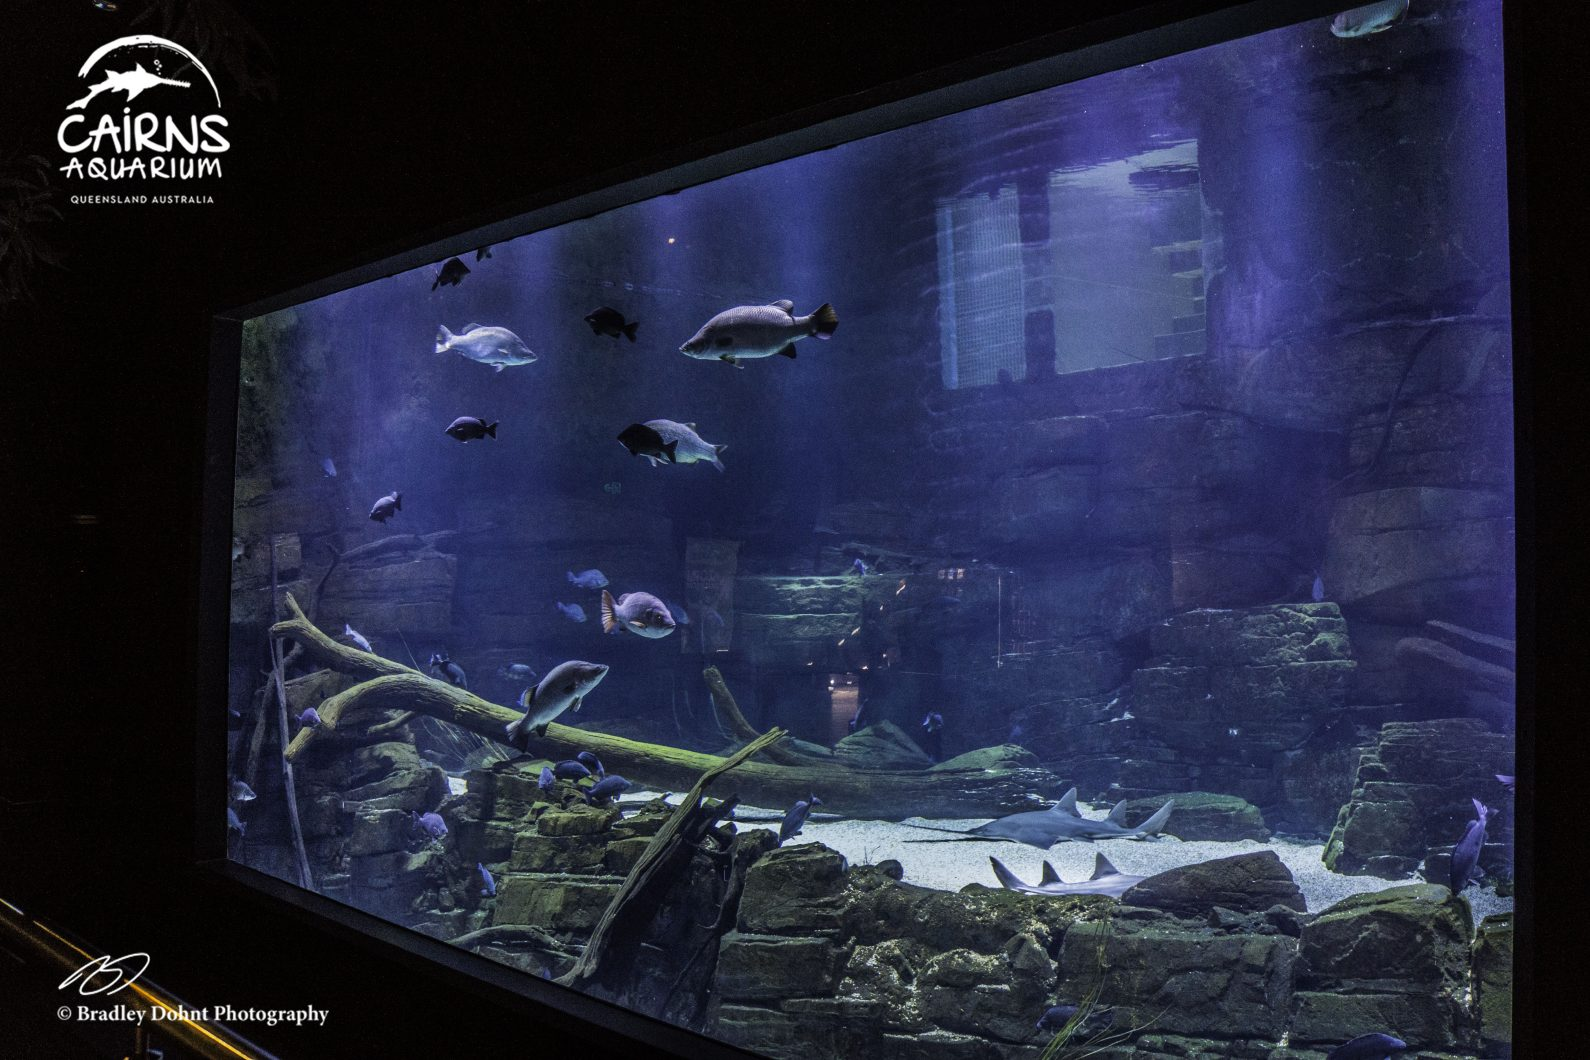 éclairage LED d'aquarium public